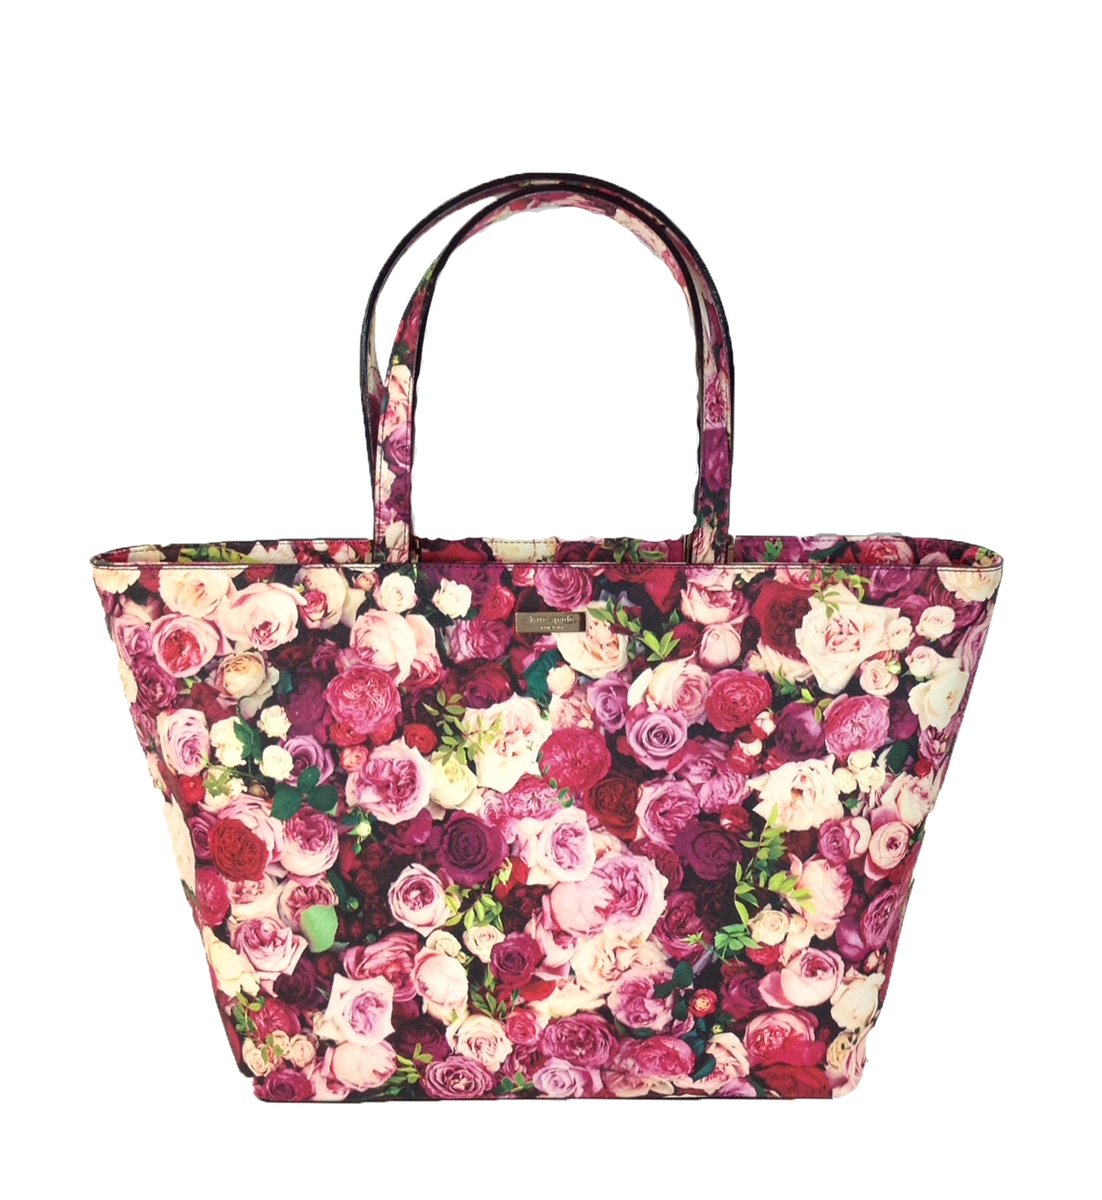 Kate Spade Grant Street Jules Floral Tote Bag Photo Rose